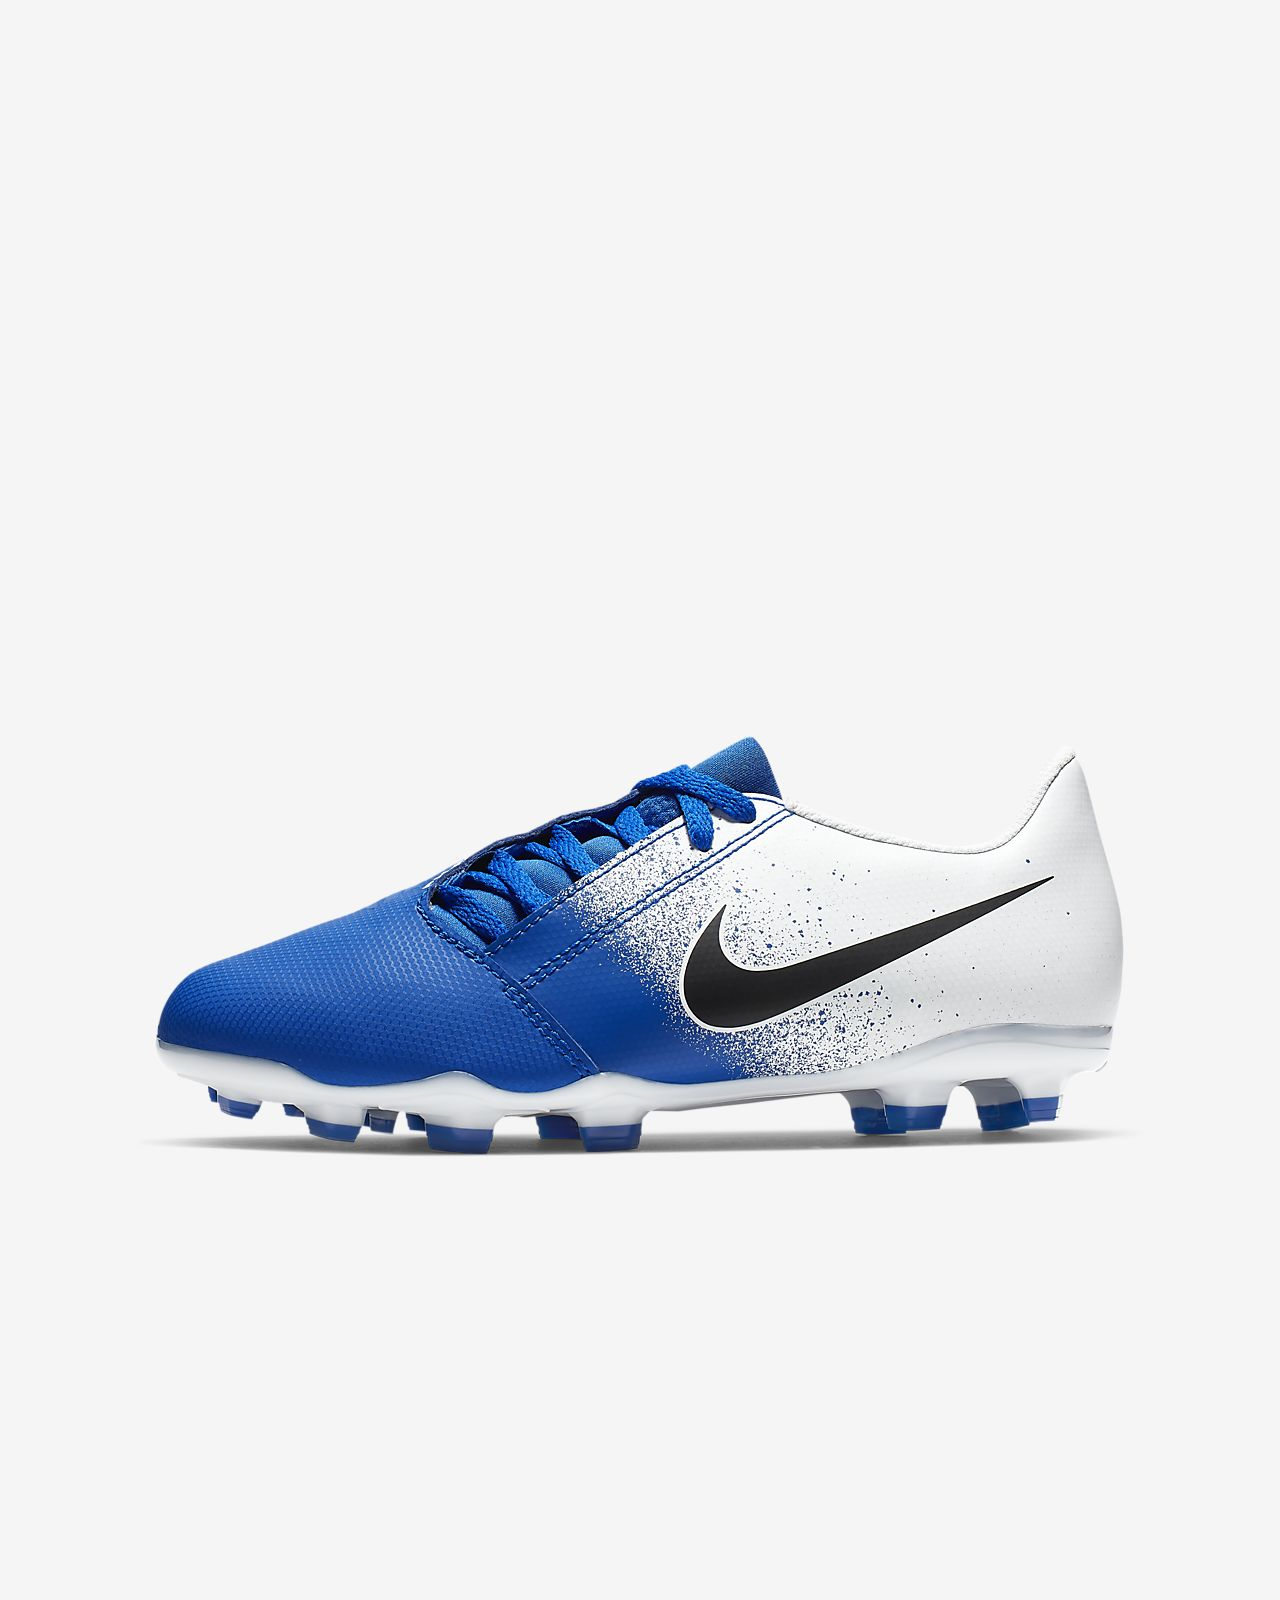 timeless design 9fb64 e8104 Nike Jr. Phantom Venom Club FG Kids' Firm-Ground Football Boot